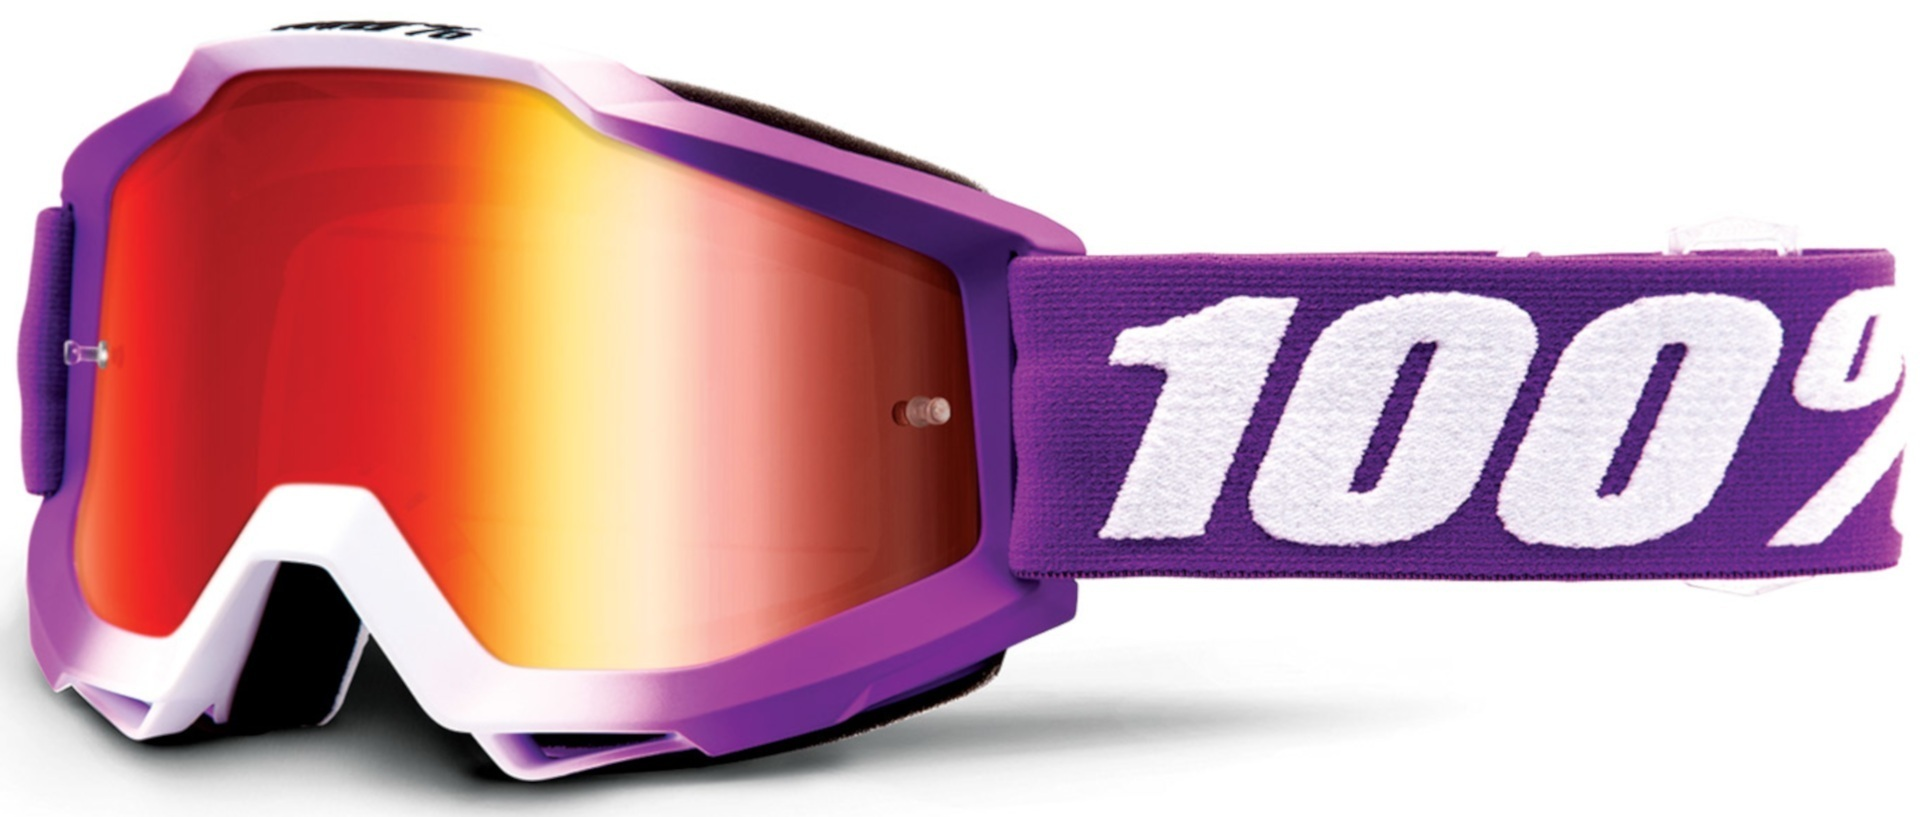 100% Accuri Framboise Motocross Brille, weiss-lila, weiss-lila RC Modellbau